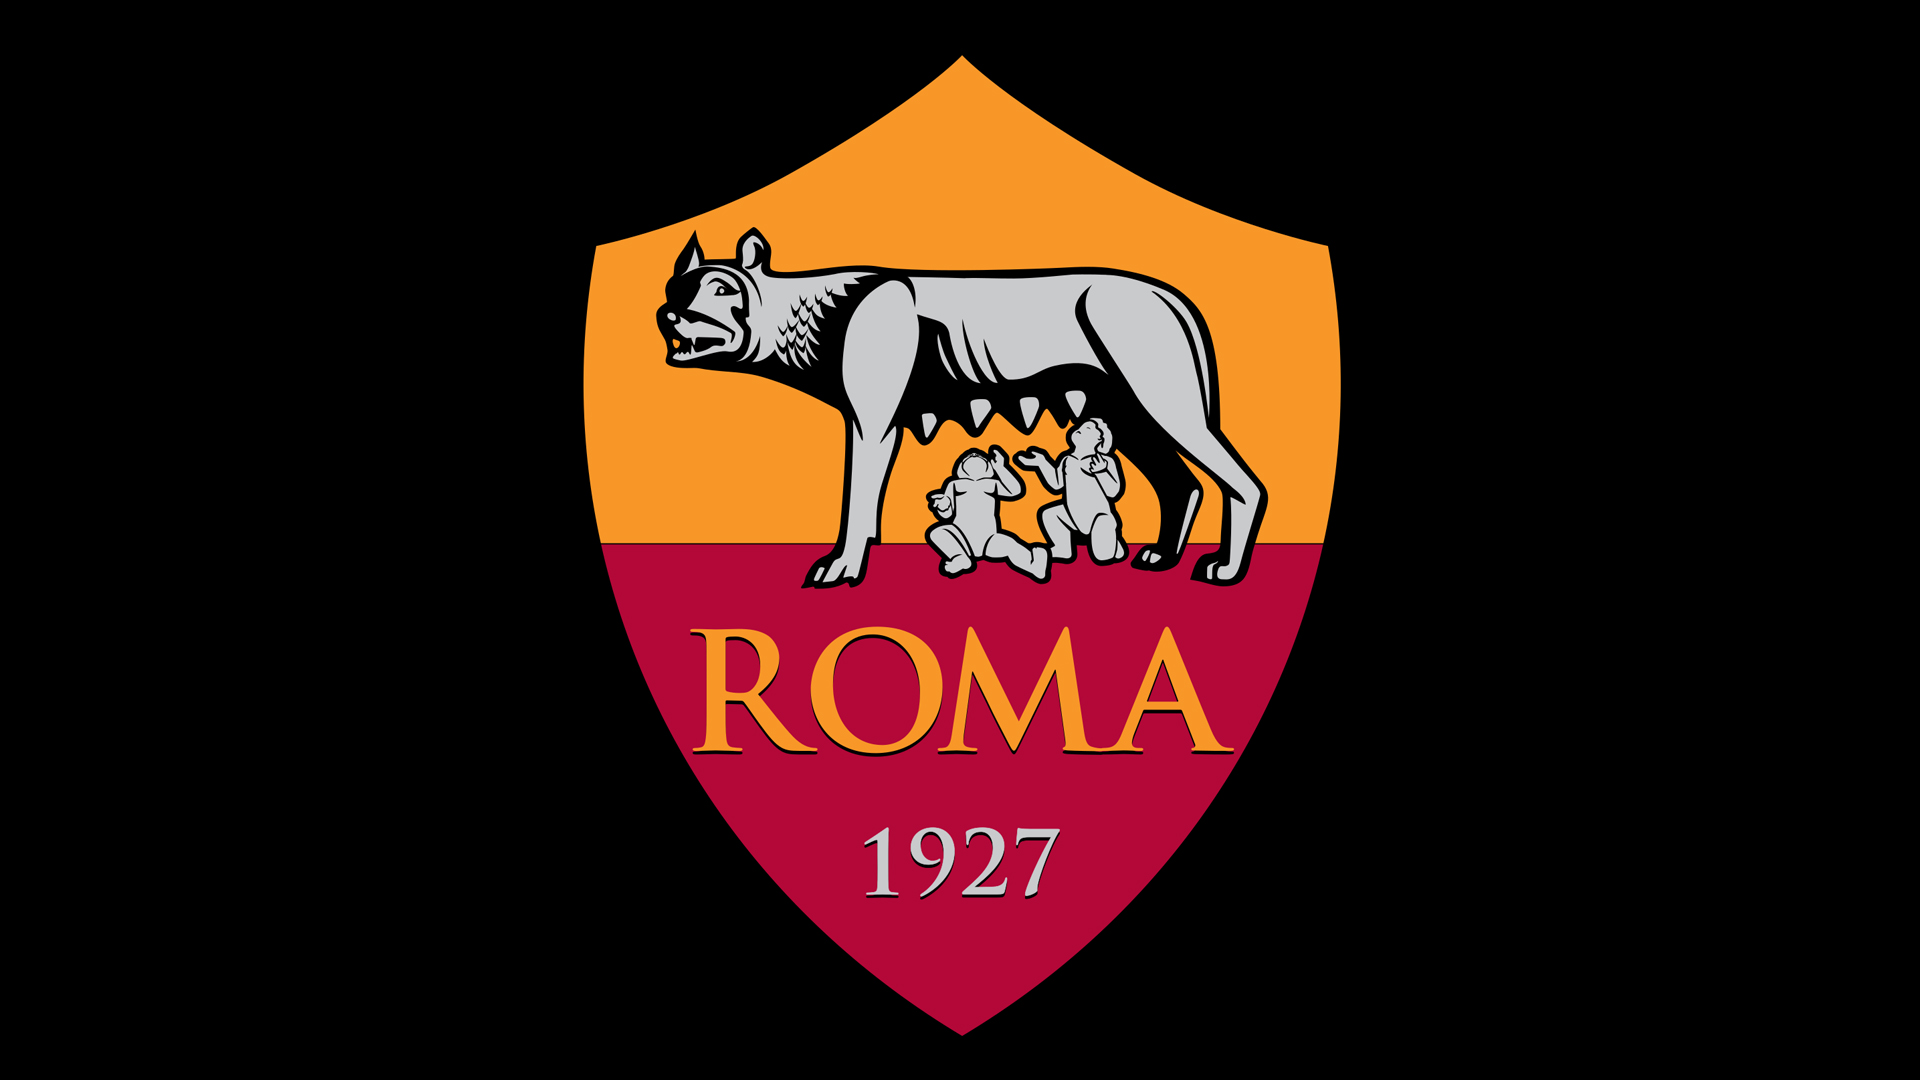 Meaning Roma logo and symbol.